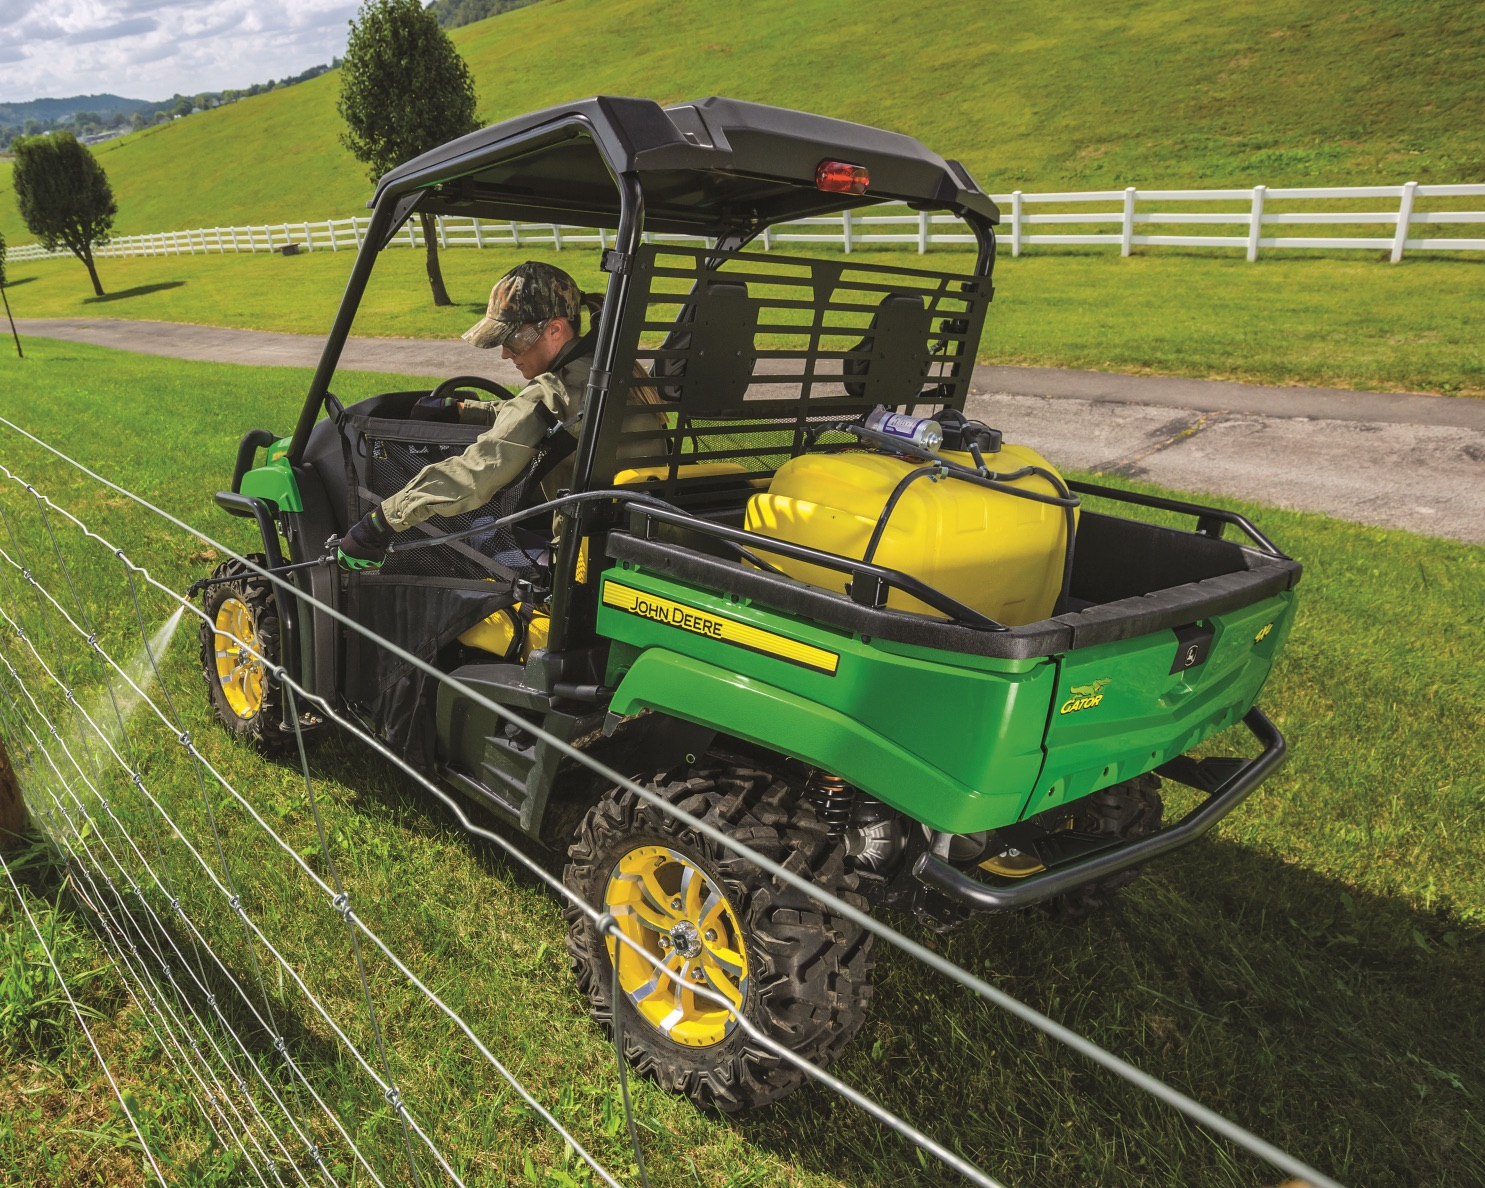 Gator-Utility-Vehicle_John-Deere